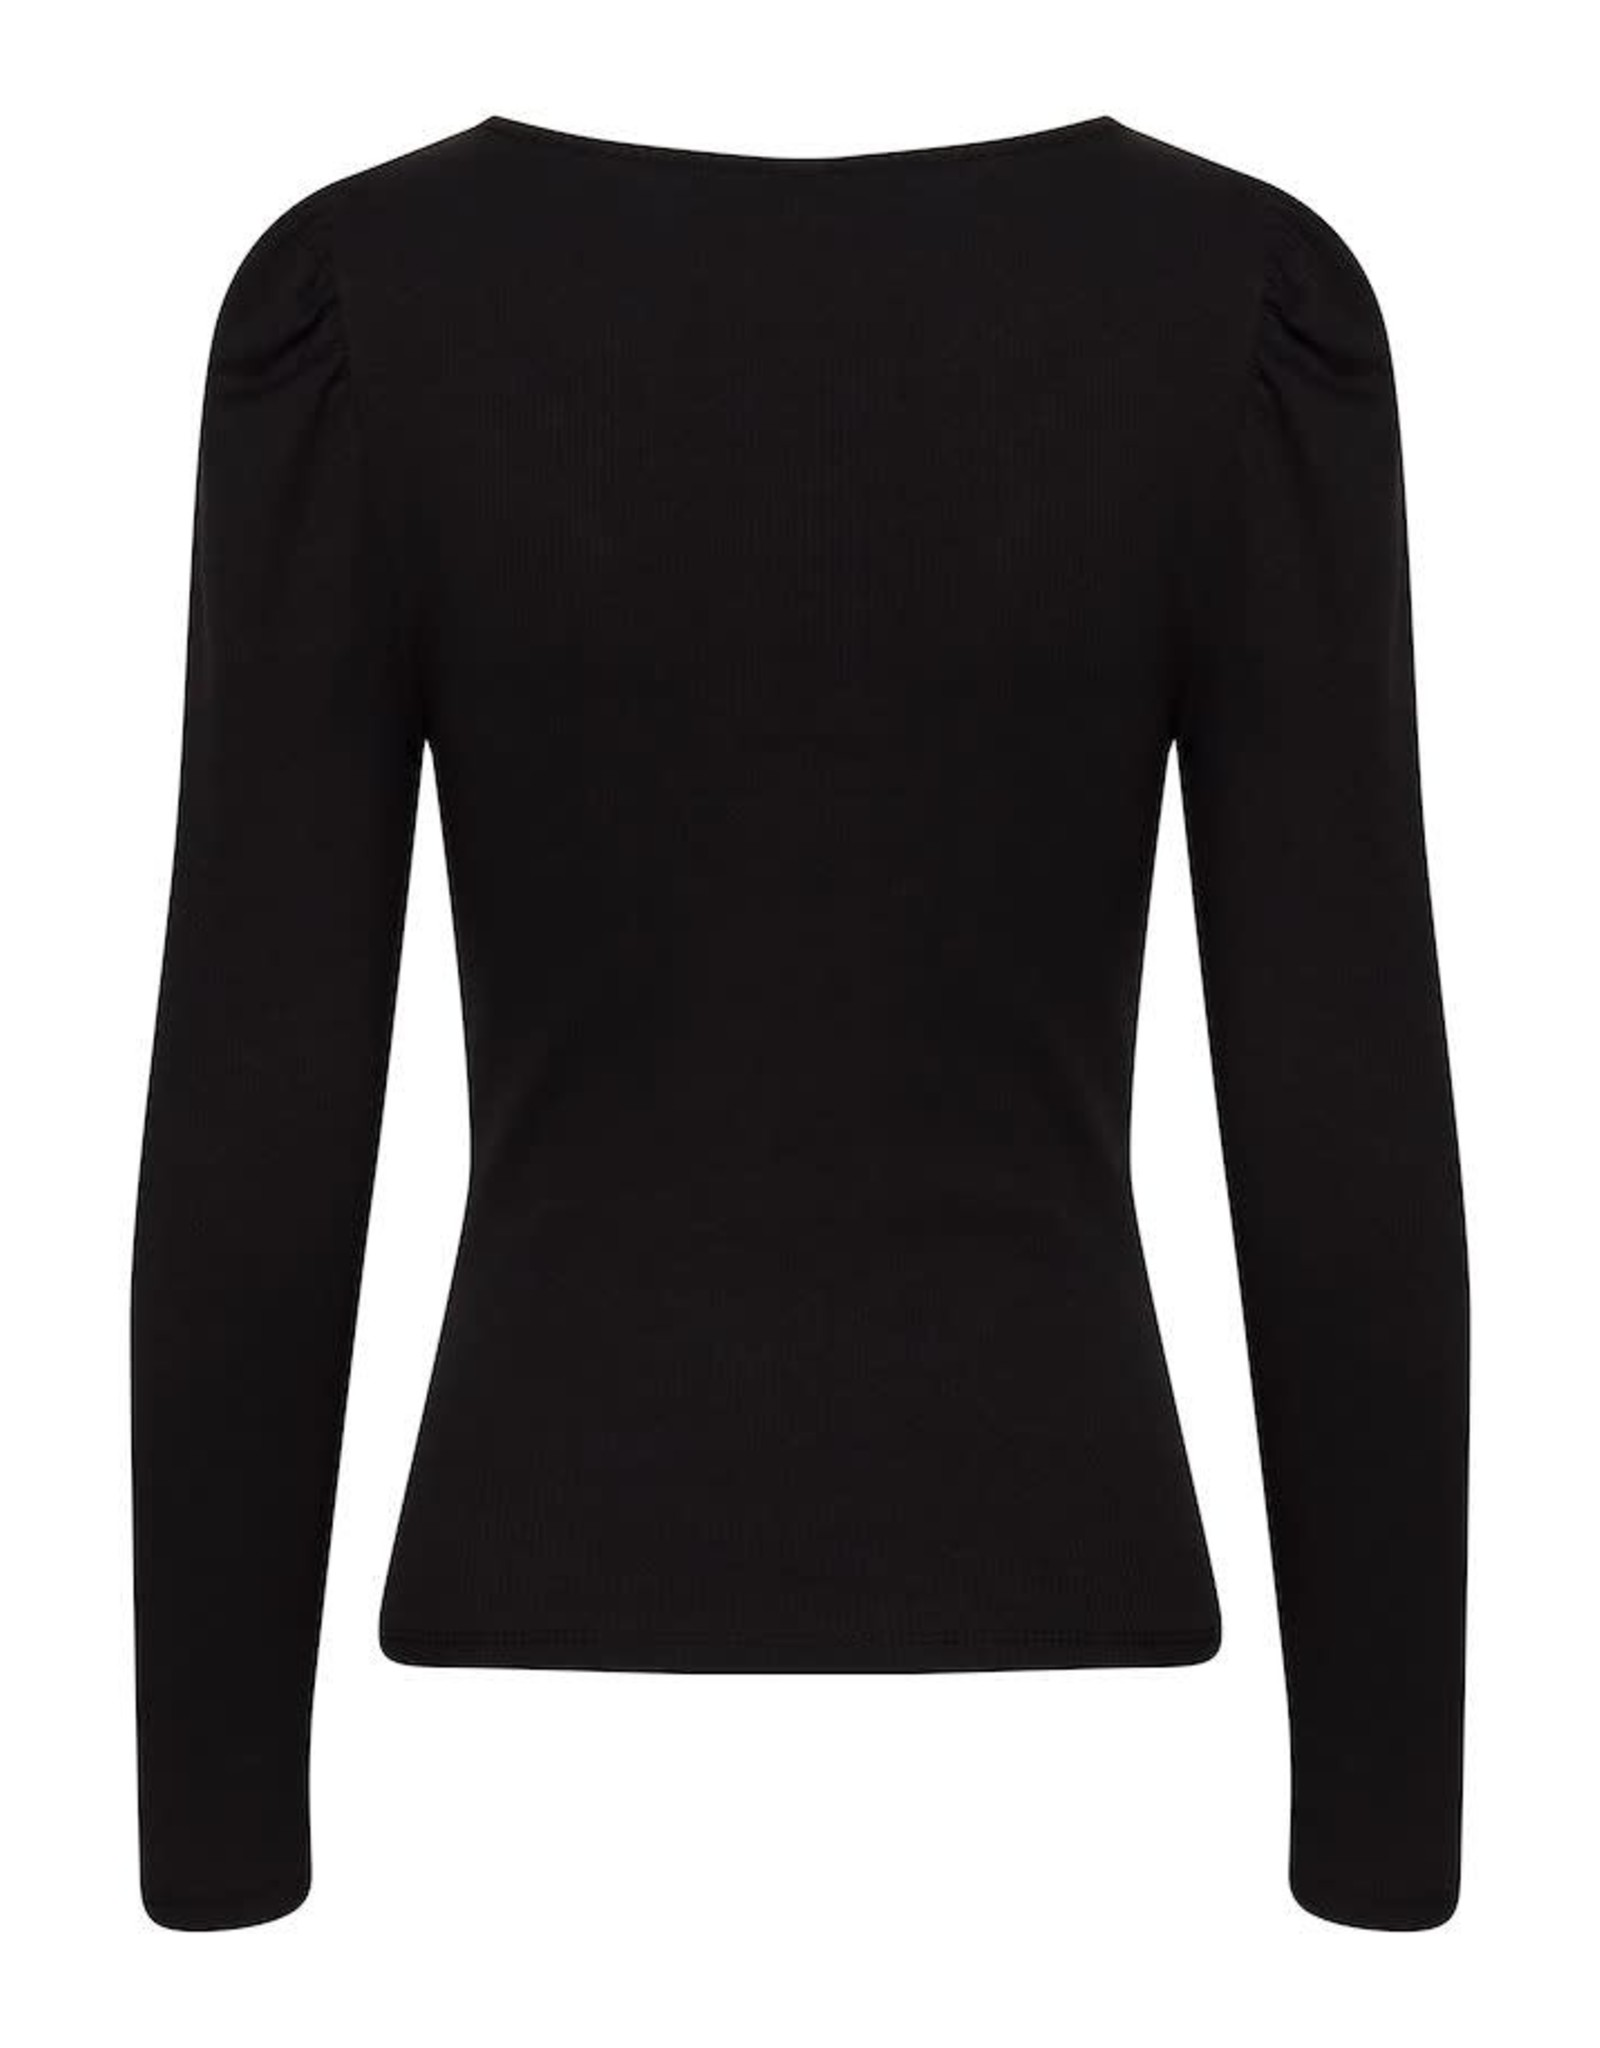 IDK - Long Sleeve Ribbed Top